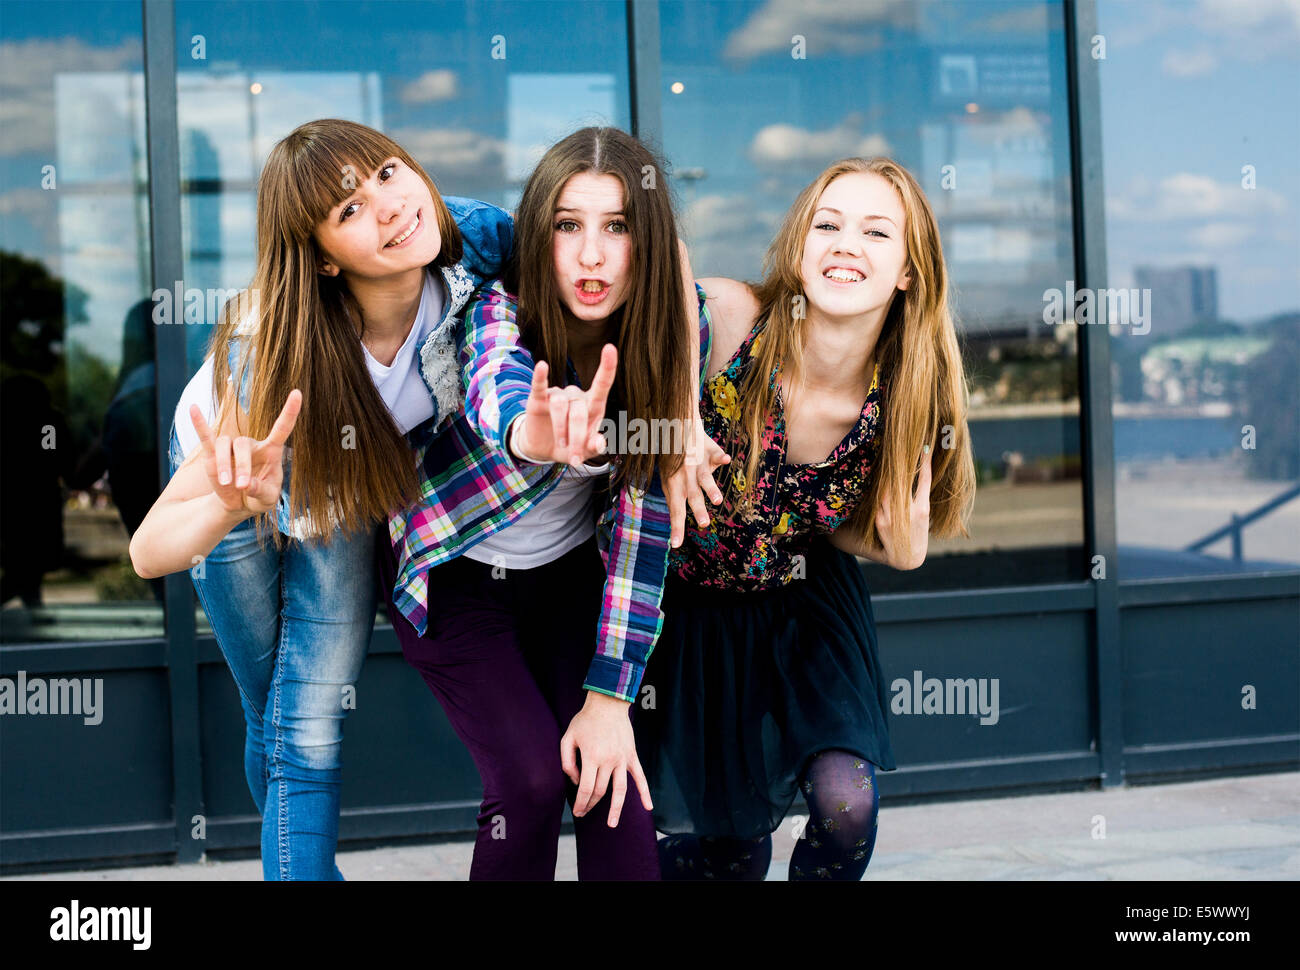 Three young women leaning forward in a row and making I love you hand gesture - Stock Image